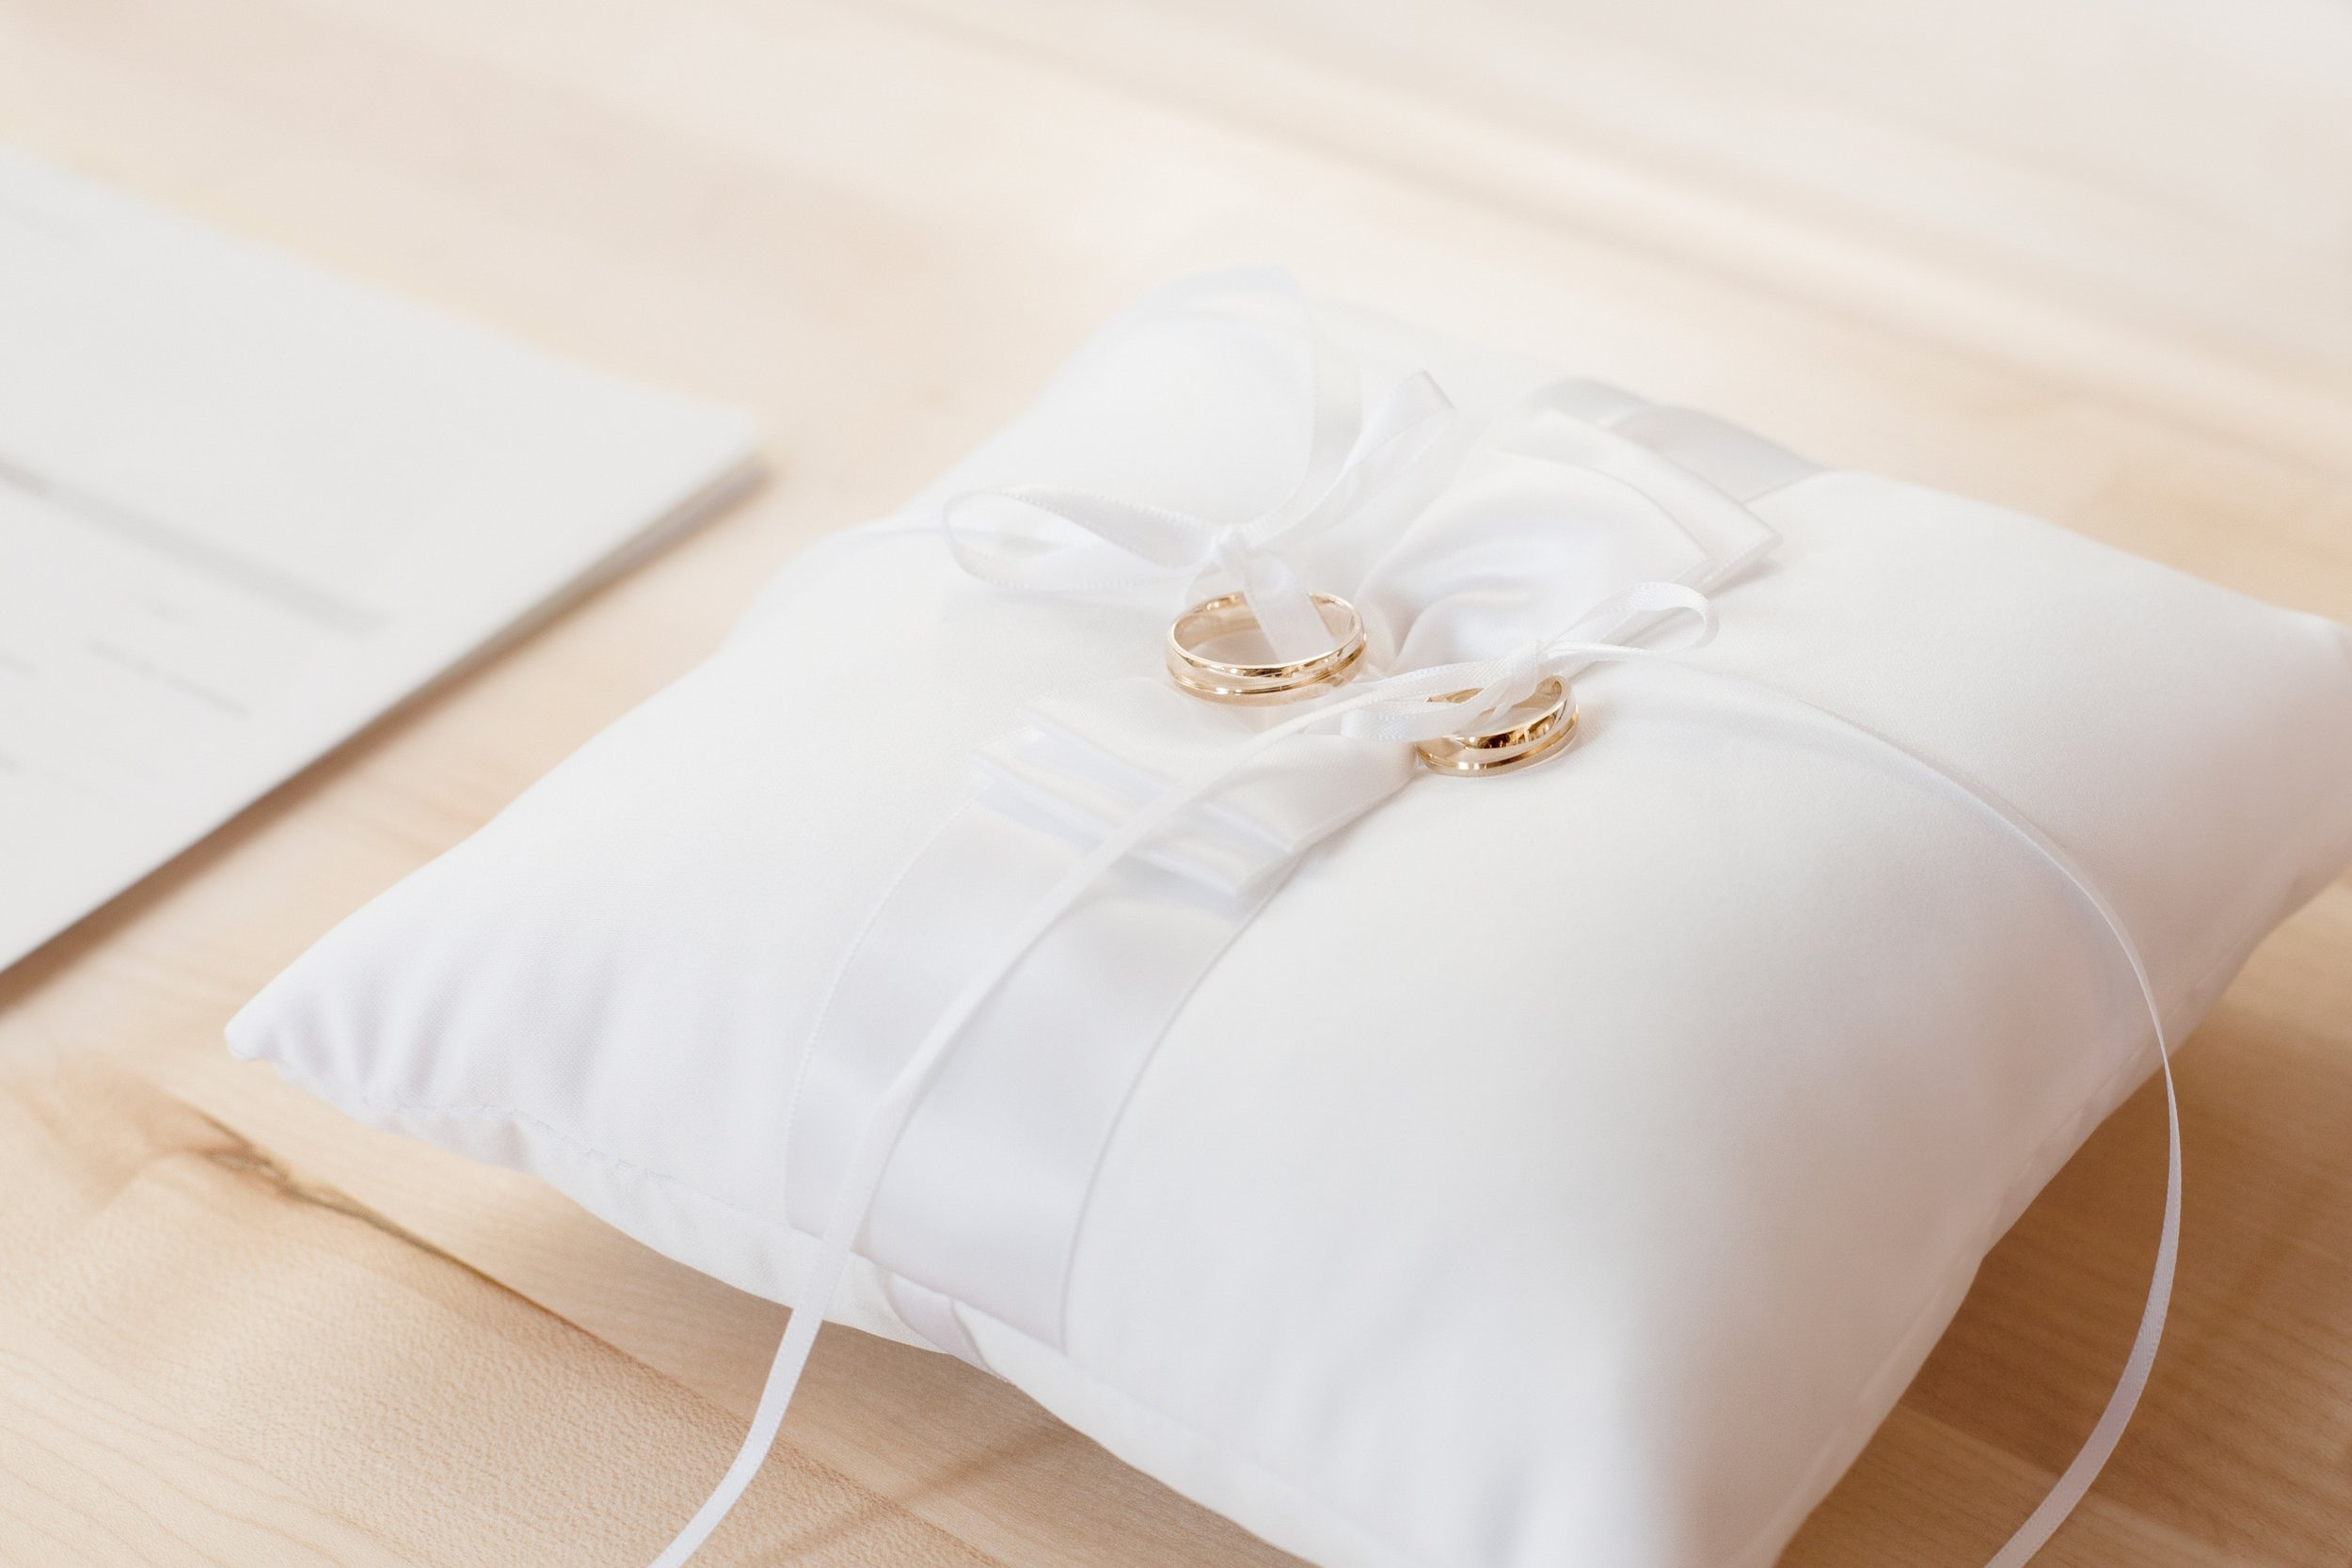 White ring cushion with two gold wedding bands attached by white ribbons.